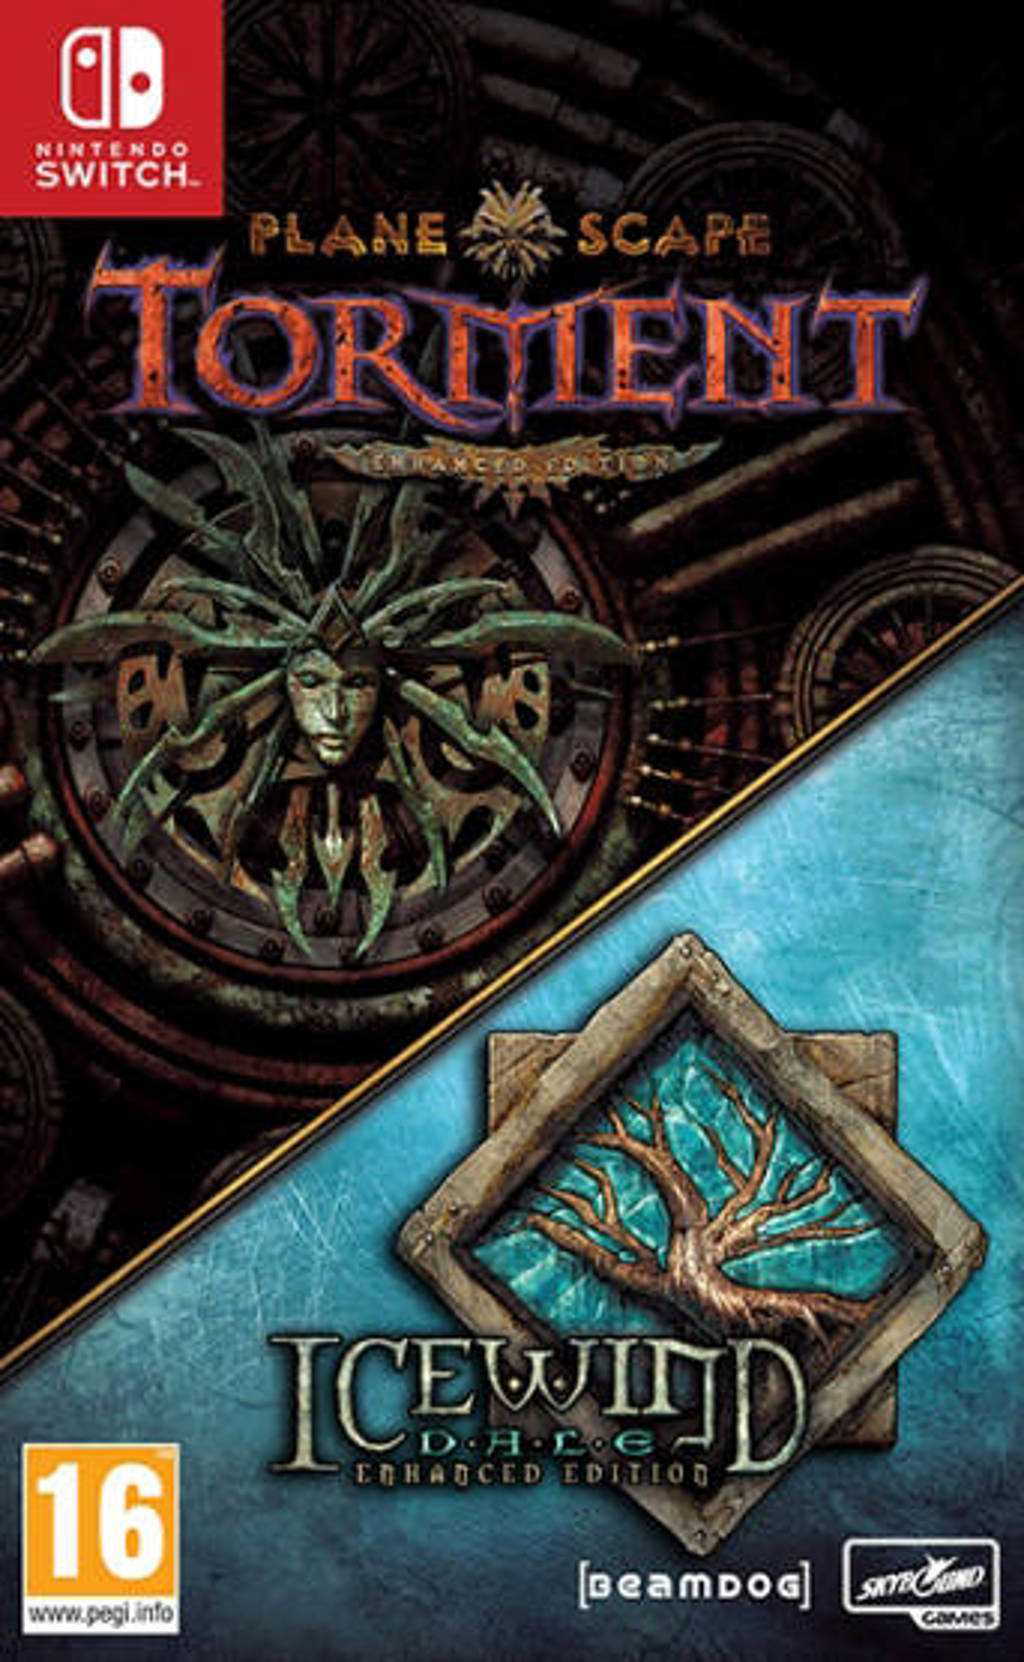 Planescape Torment + Icewind Dale (Enhanced edition) (Nintendo Switch)